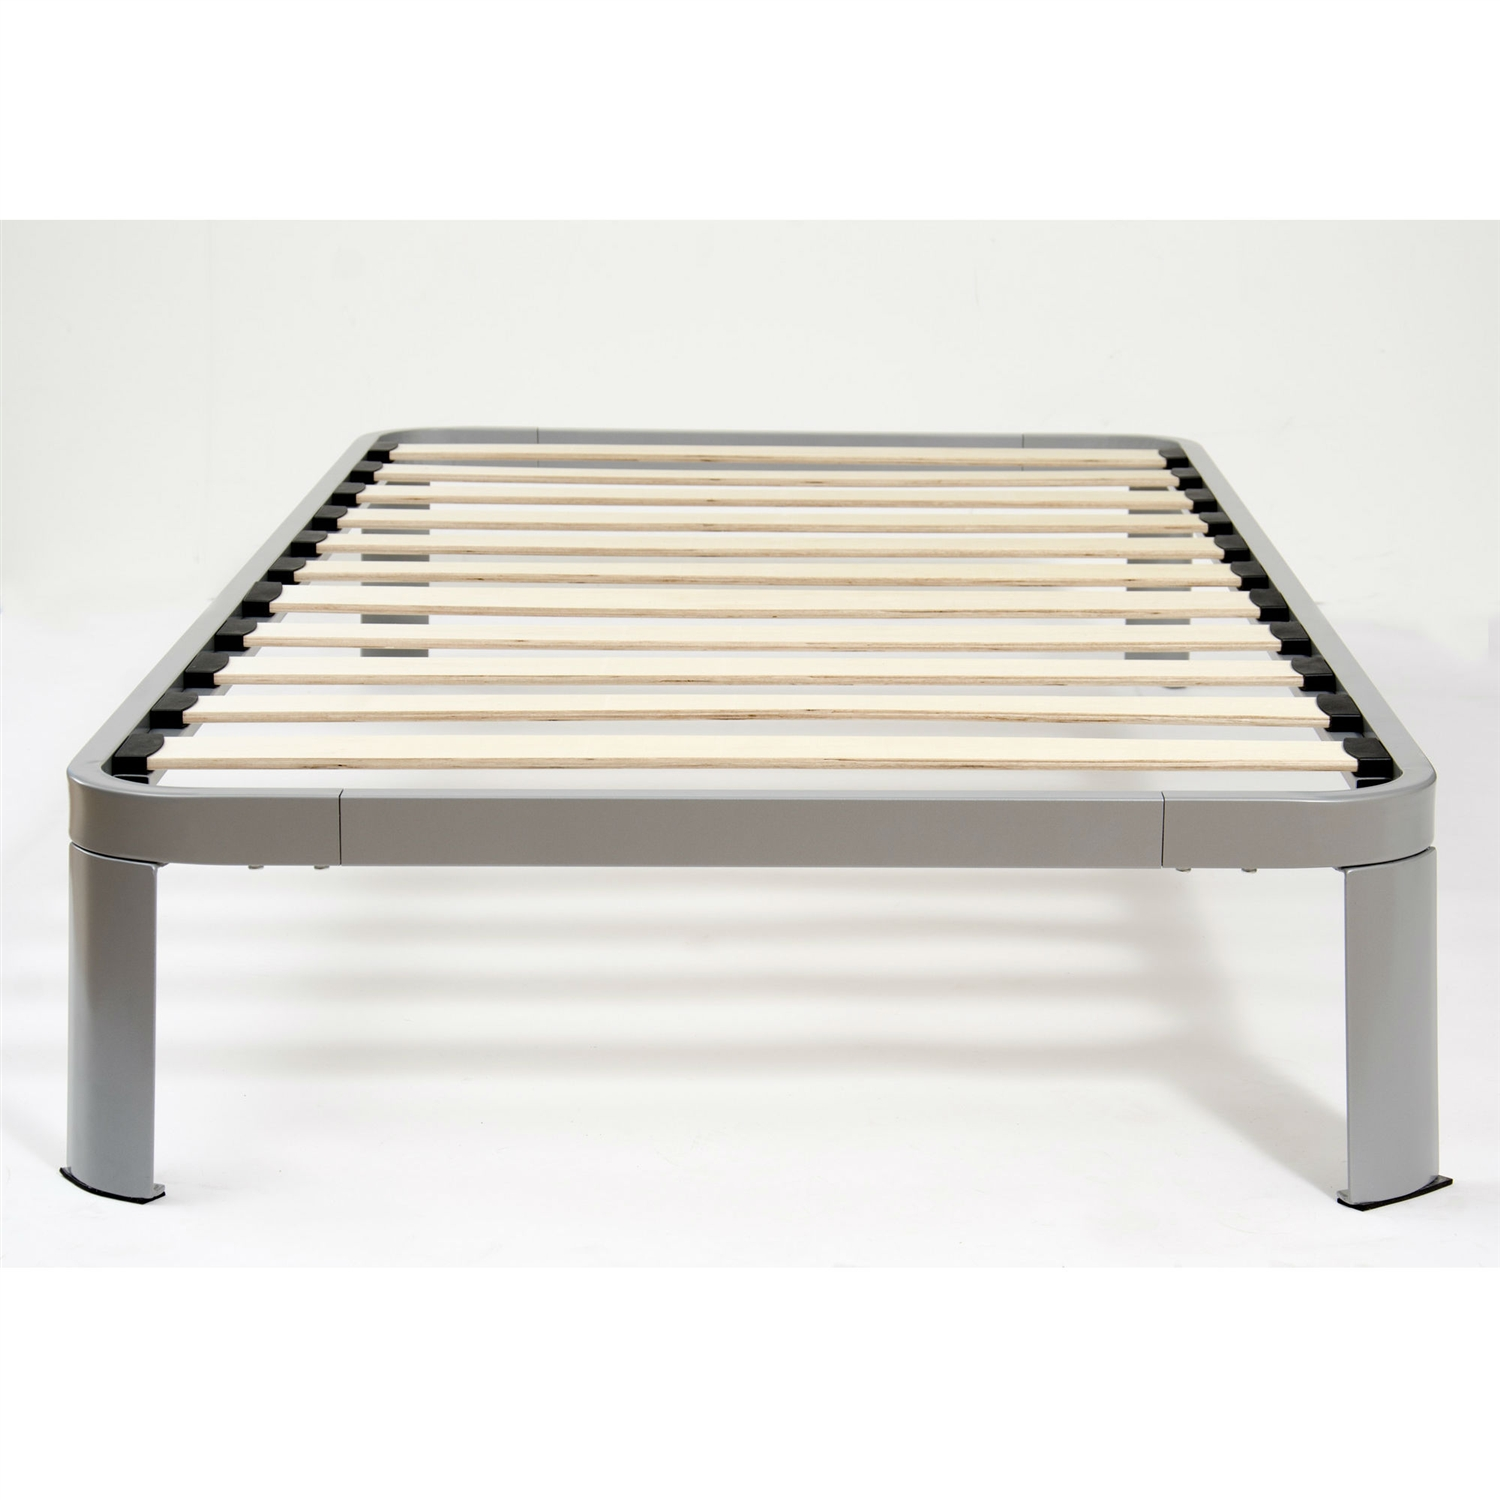 bed frame boltz profile platformsteelbedlowprofile steel low lightbox metal furniture moreview platform